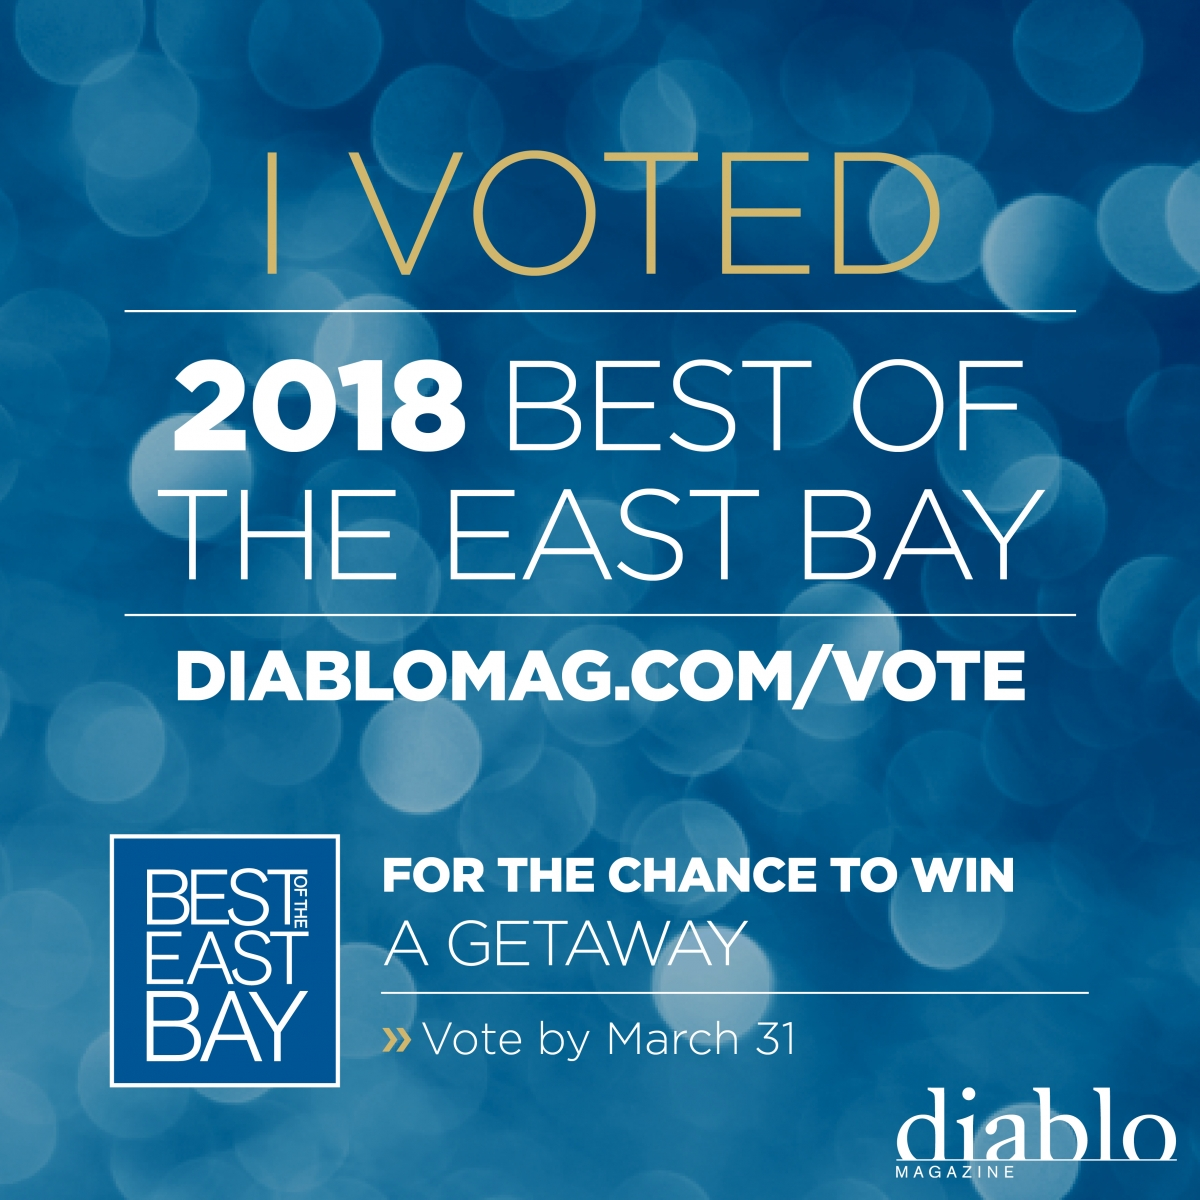 I Voted Best of the East Bay Badge_2018.jpg